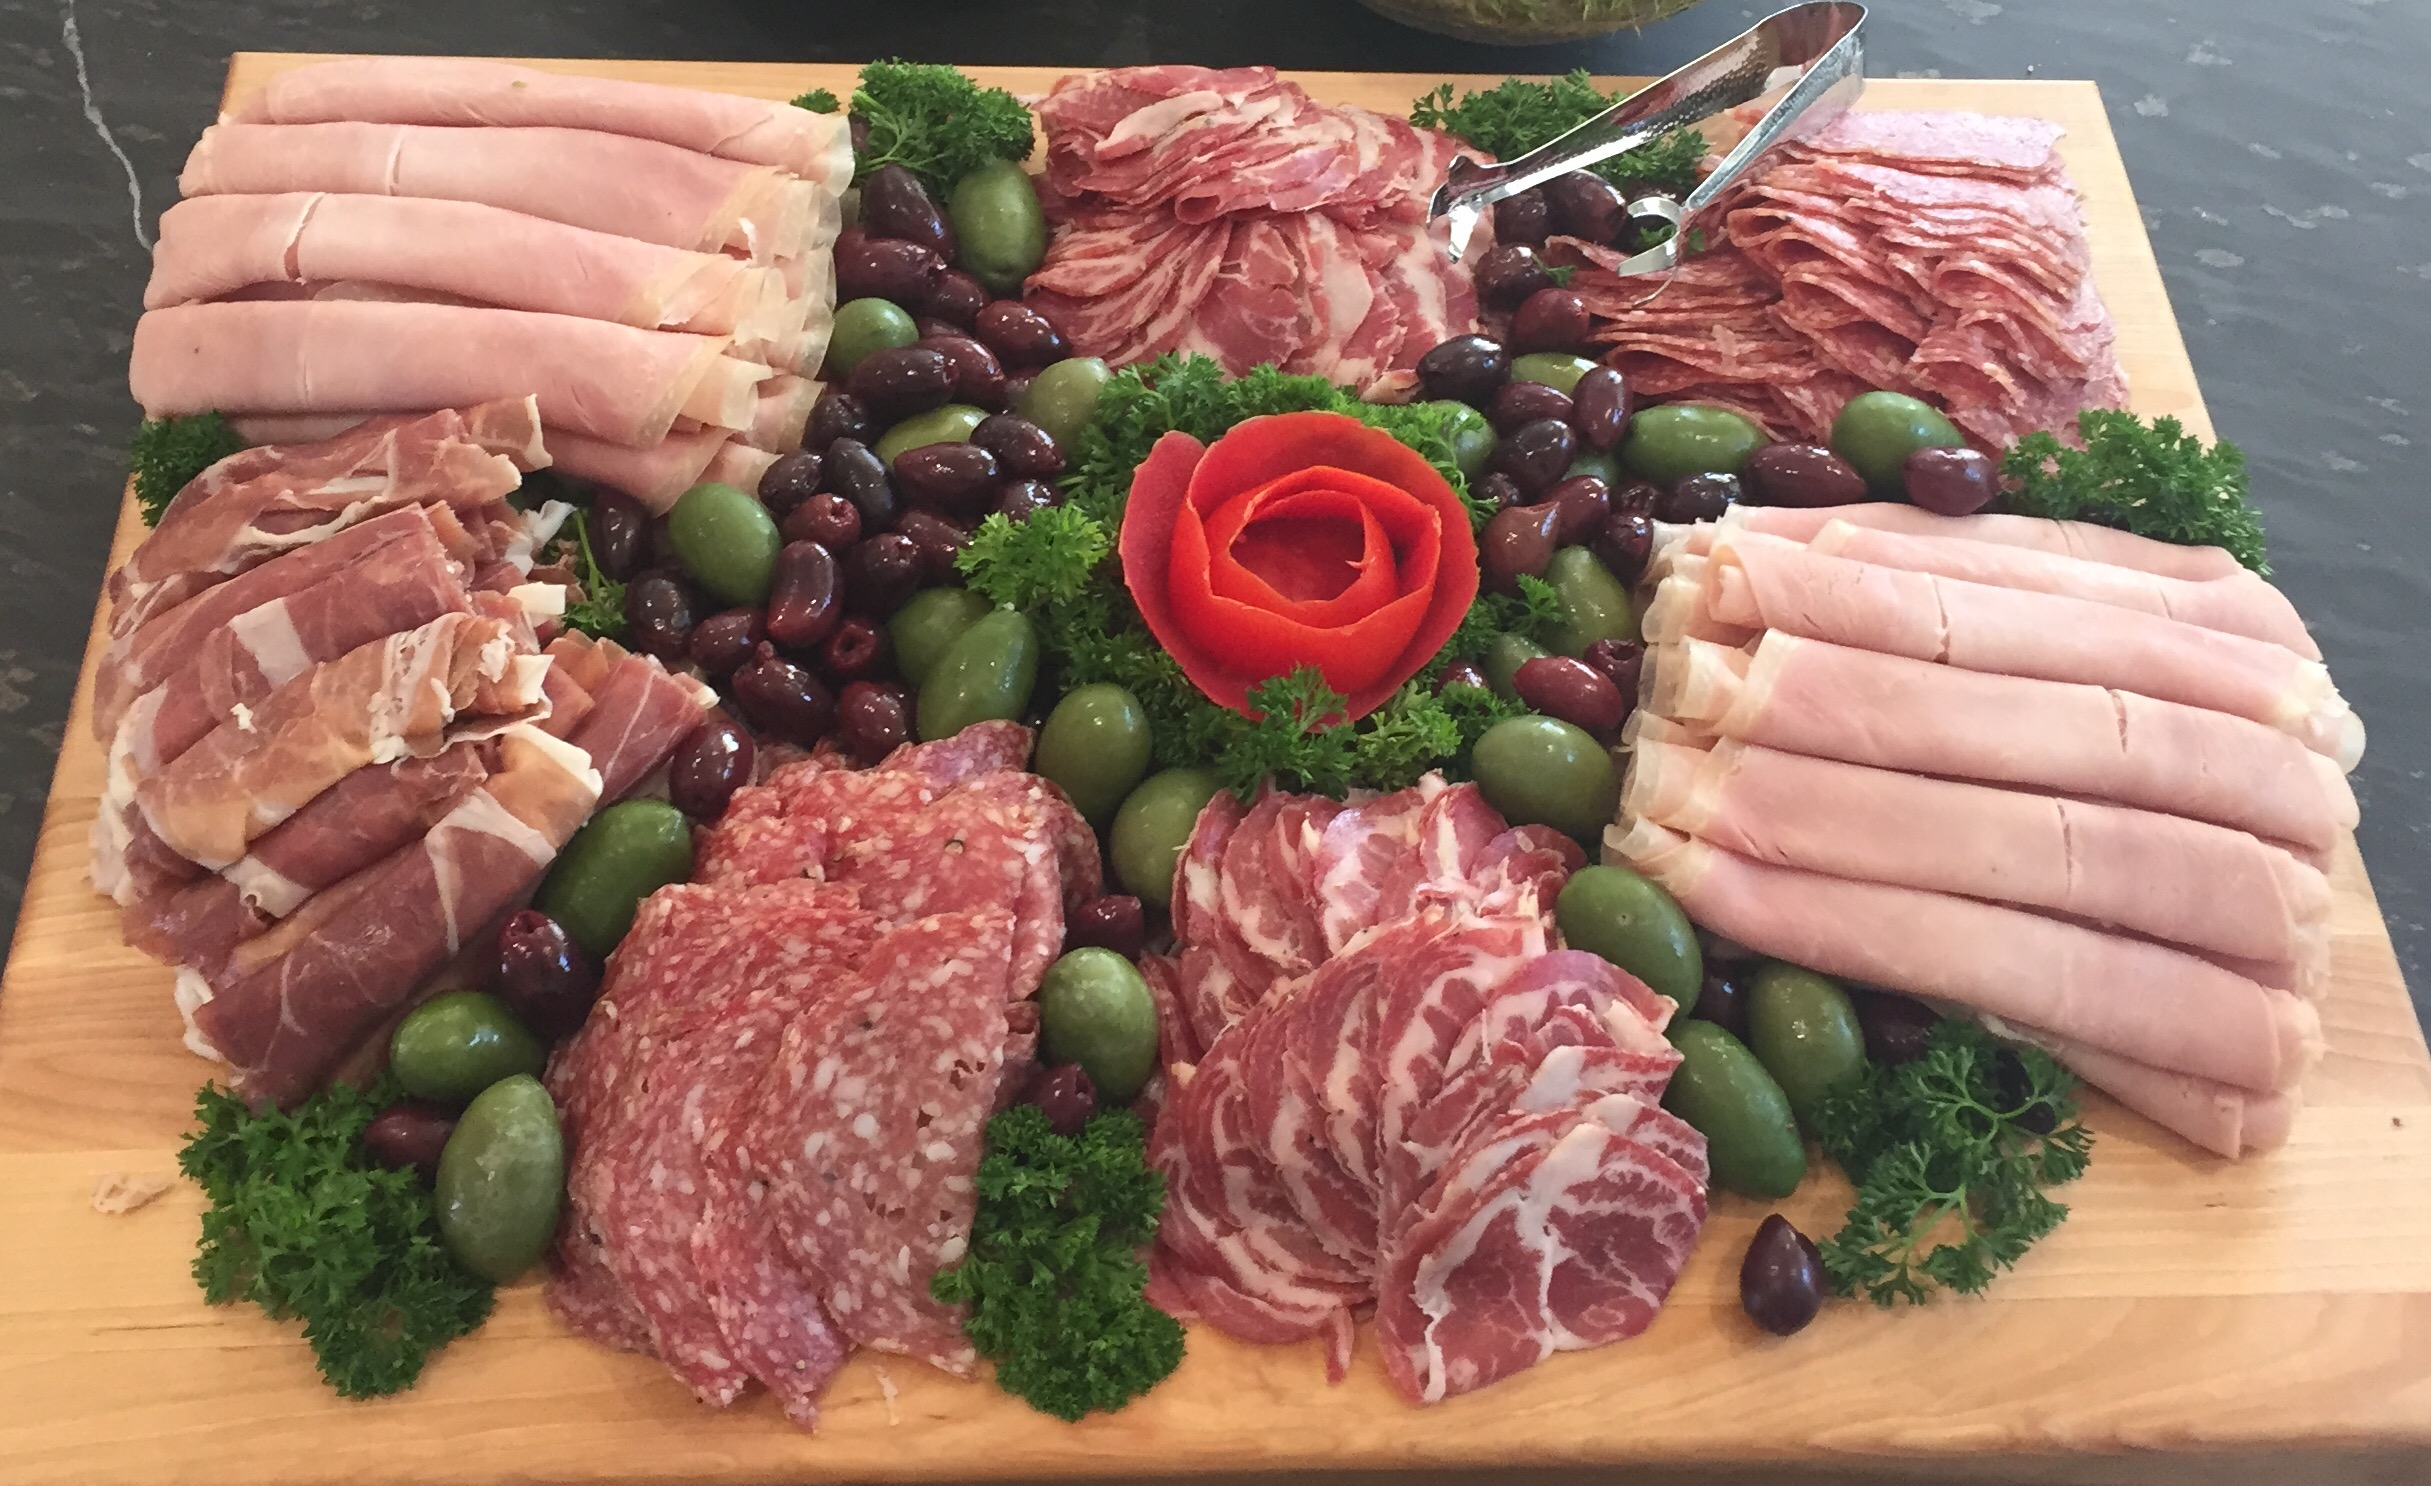 Charcuterie: imported or deli